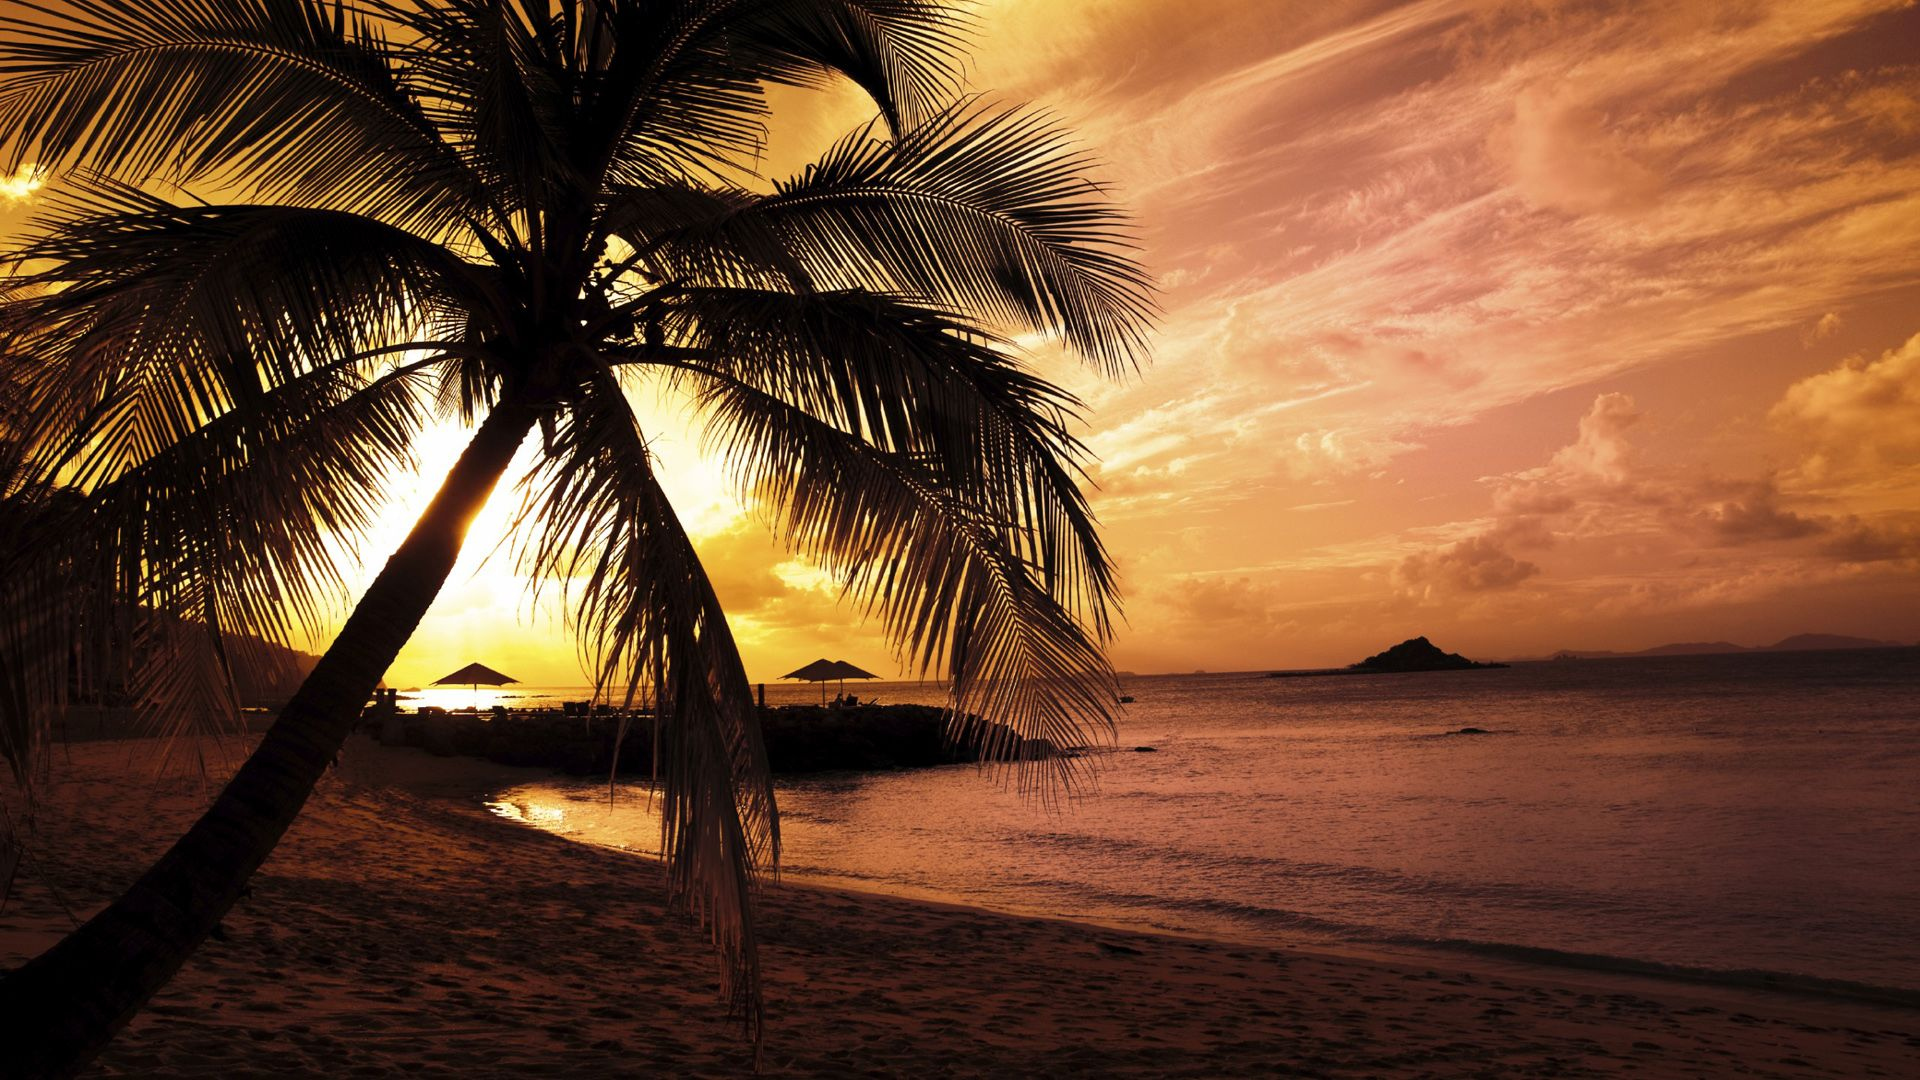 Tropical beach scenery at night Wallpapers 1920x1080